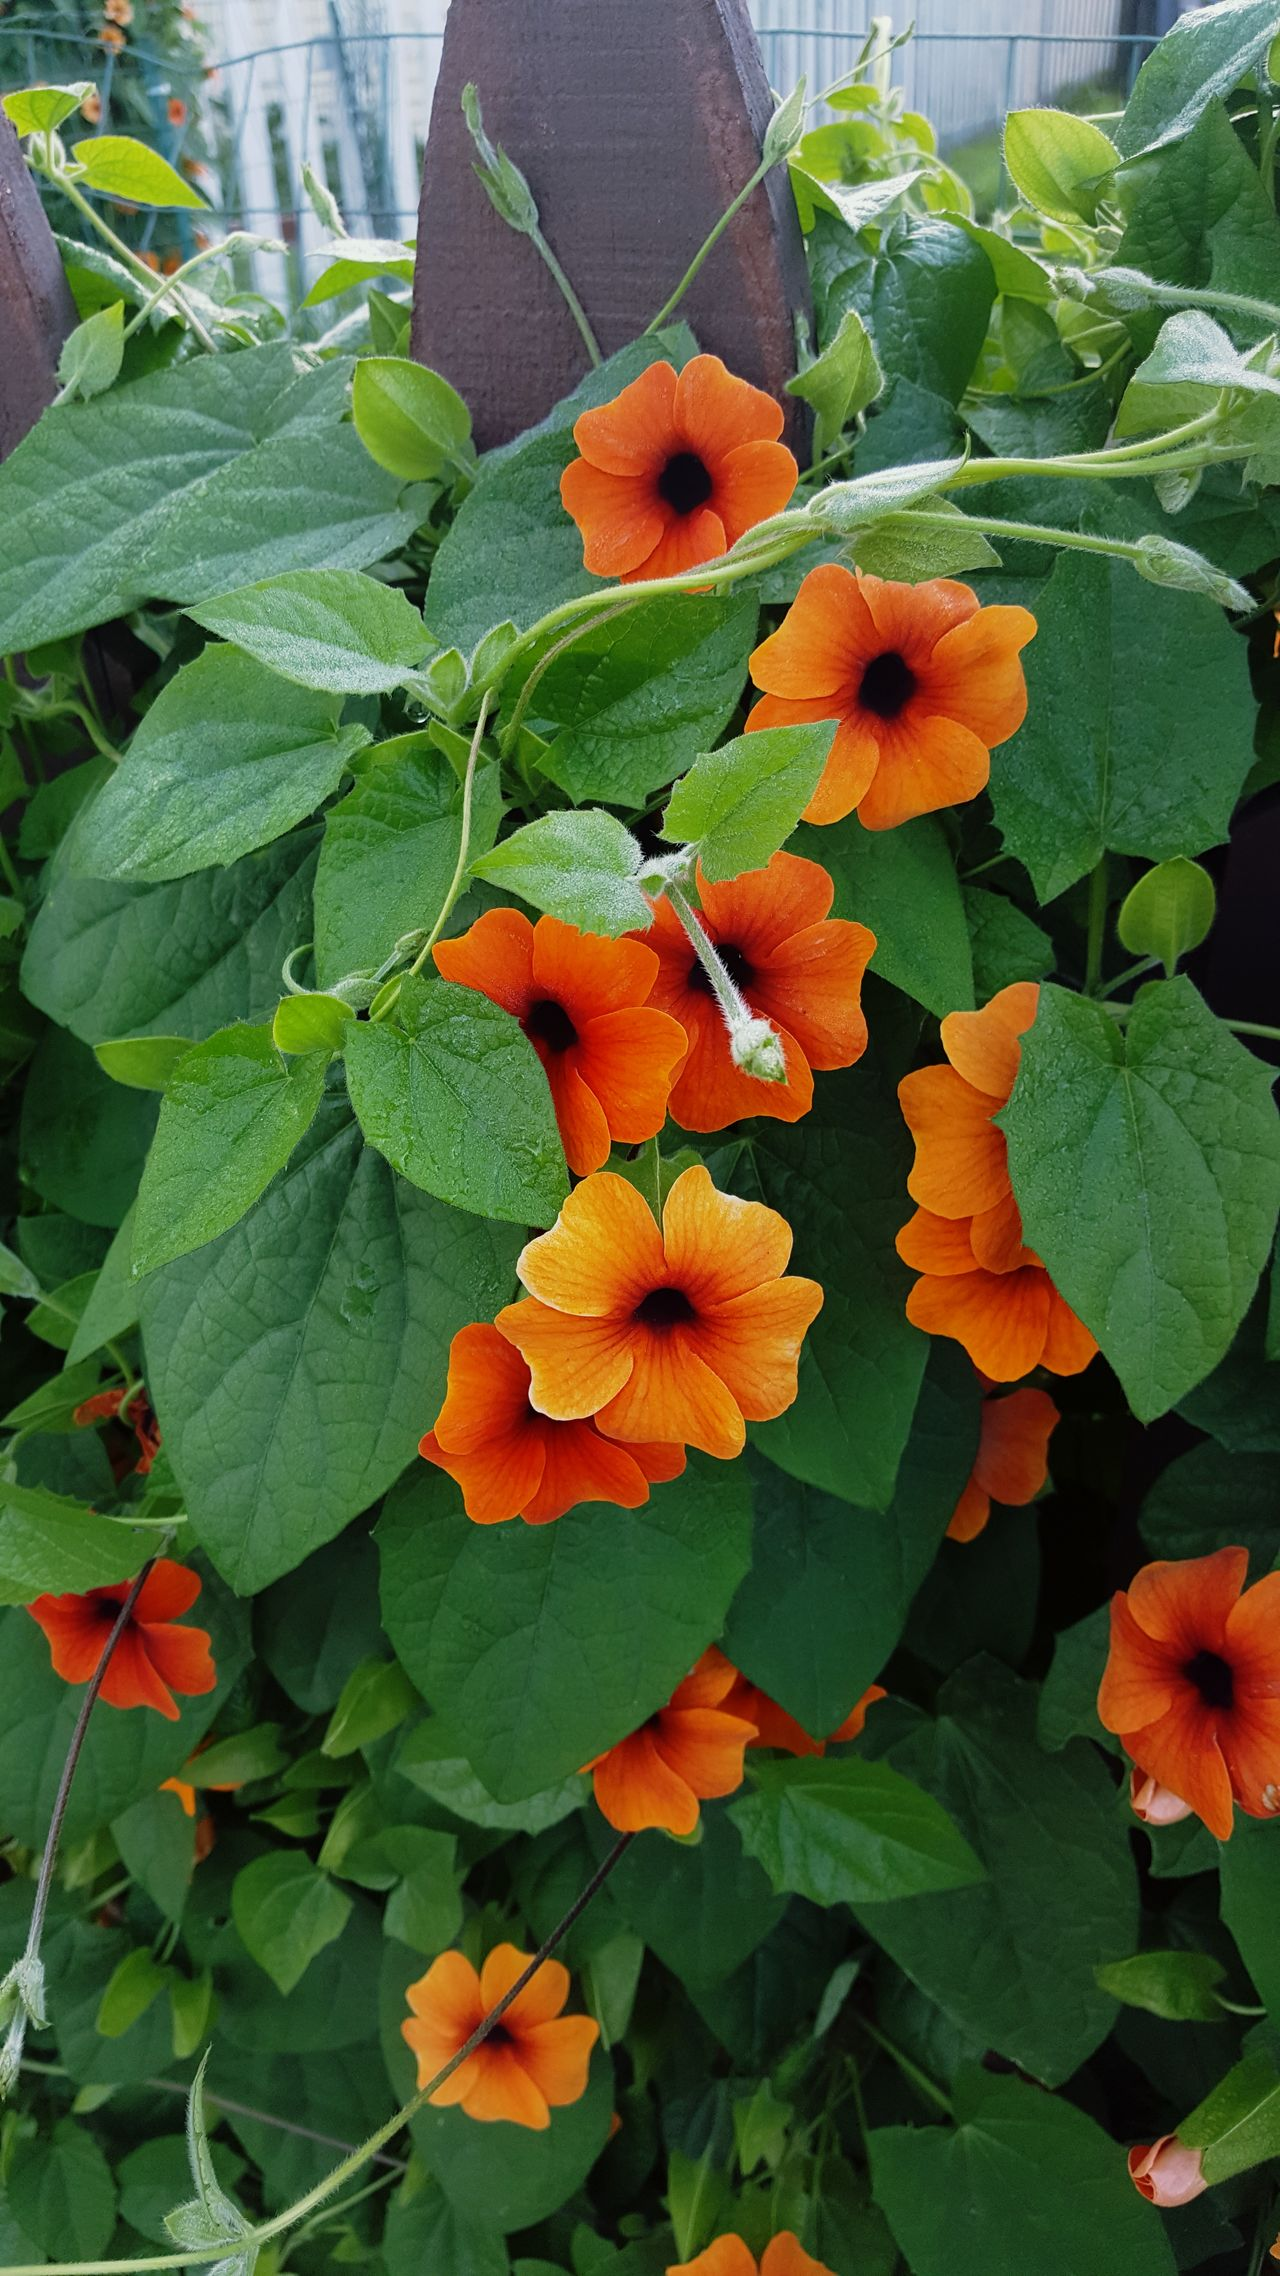 Growth Nature Orange Color Flower Leaf Beauty In Nature Green Color Plant Freshness Fragility No People Day Outdoors Flower Head Close-up No Filter Offthebeatenpath Urban Landscape Color Photography Beauty In Nature Green Vine Fence Overgrown And Beautiful Flowers Live For The Story